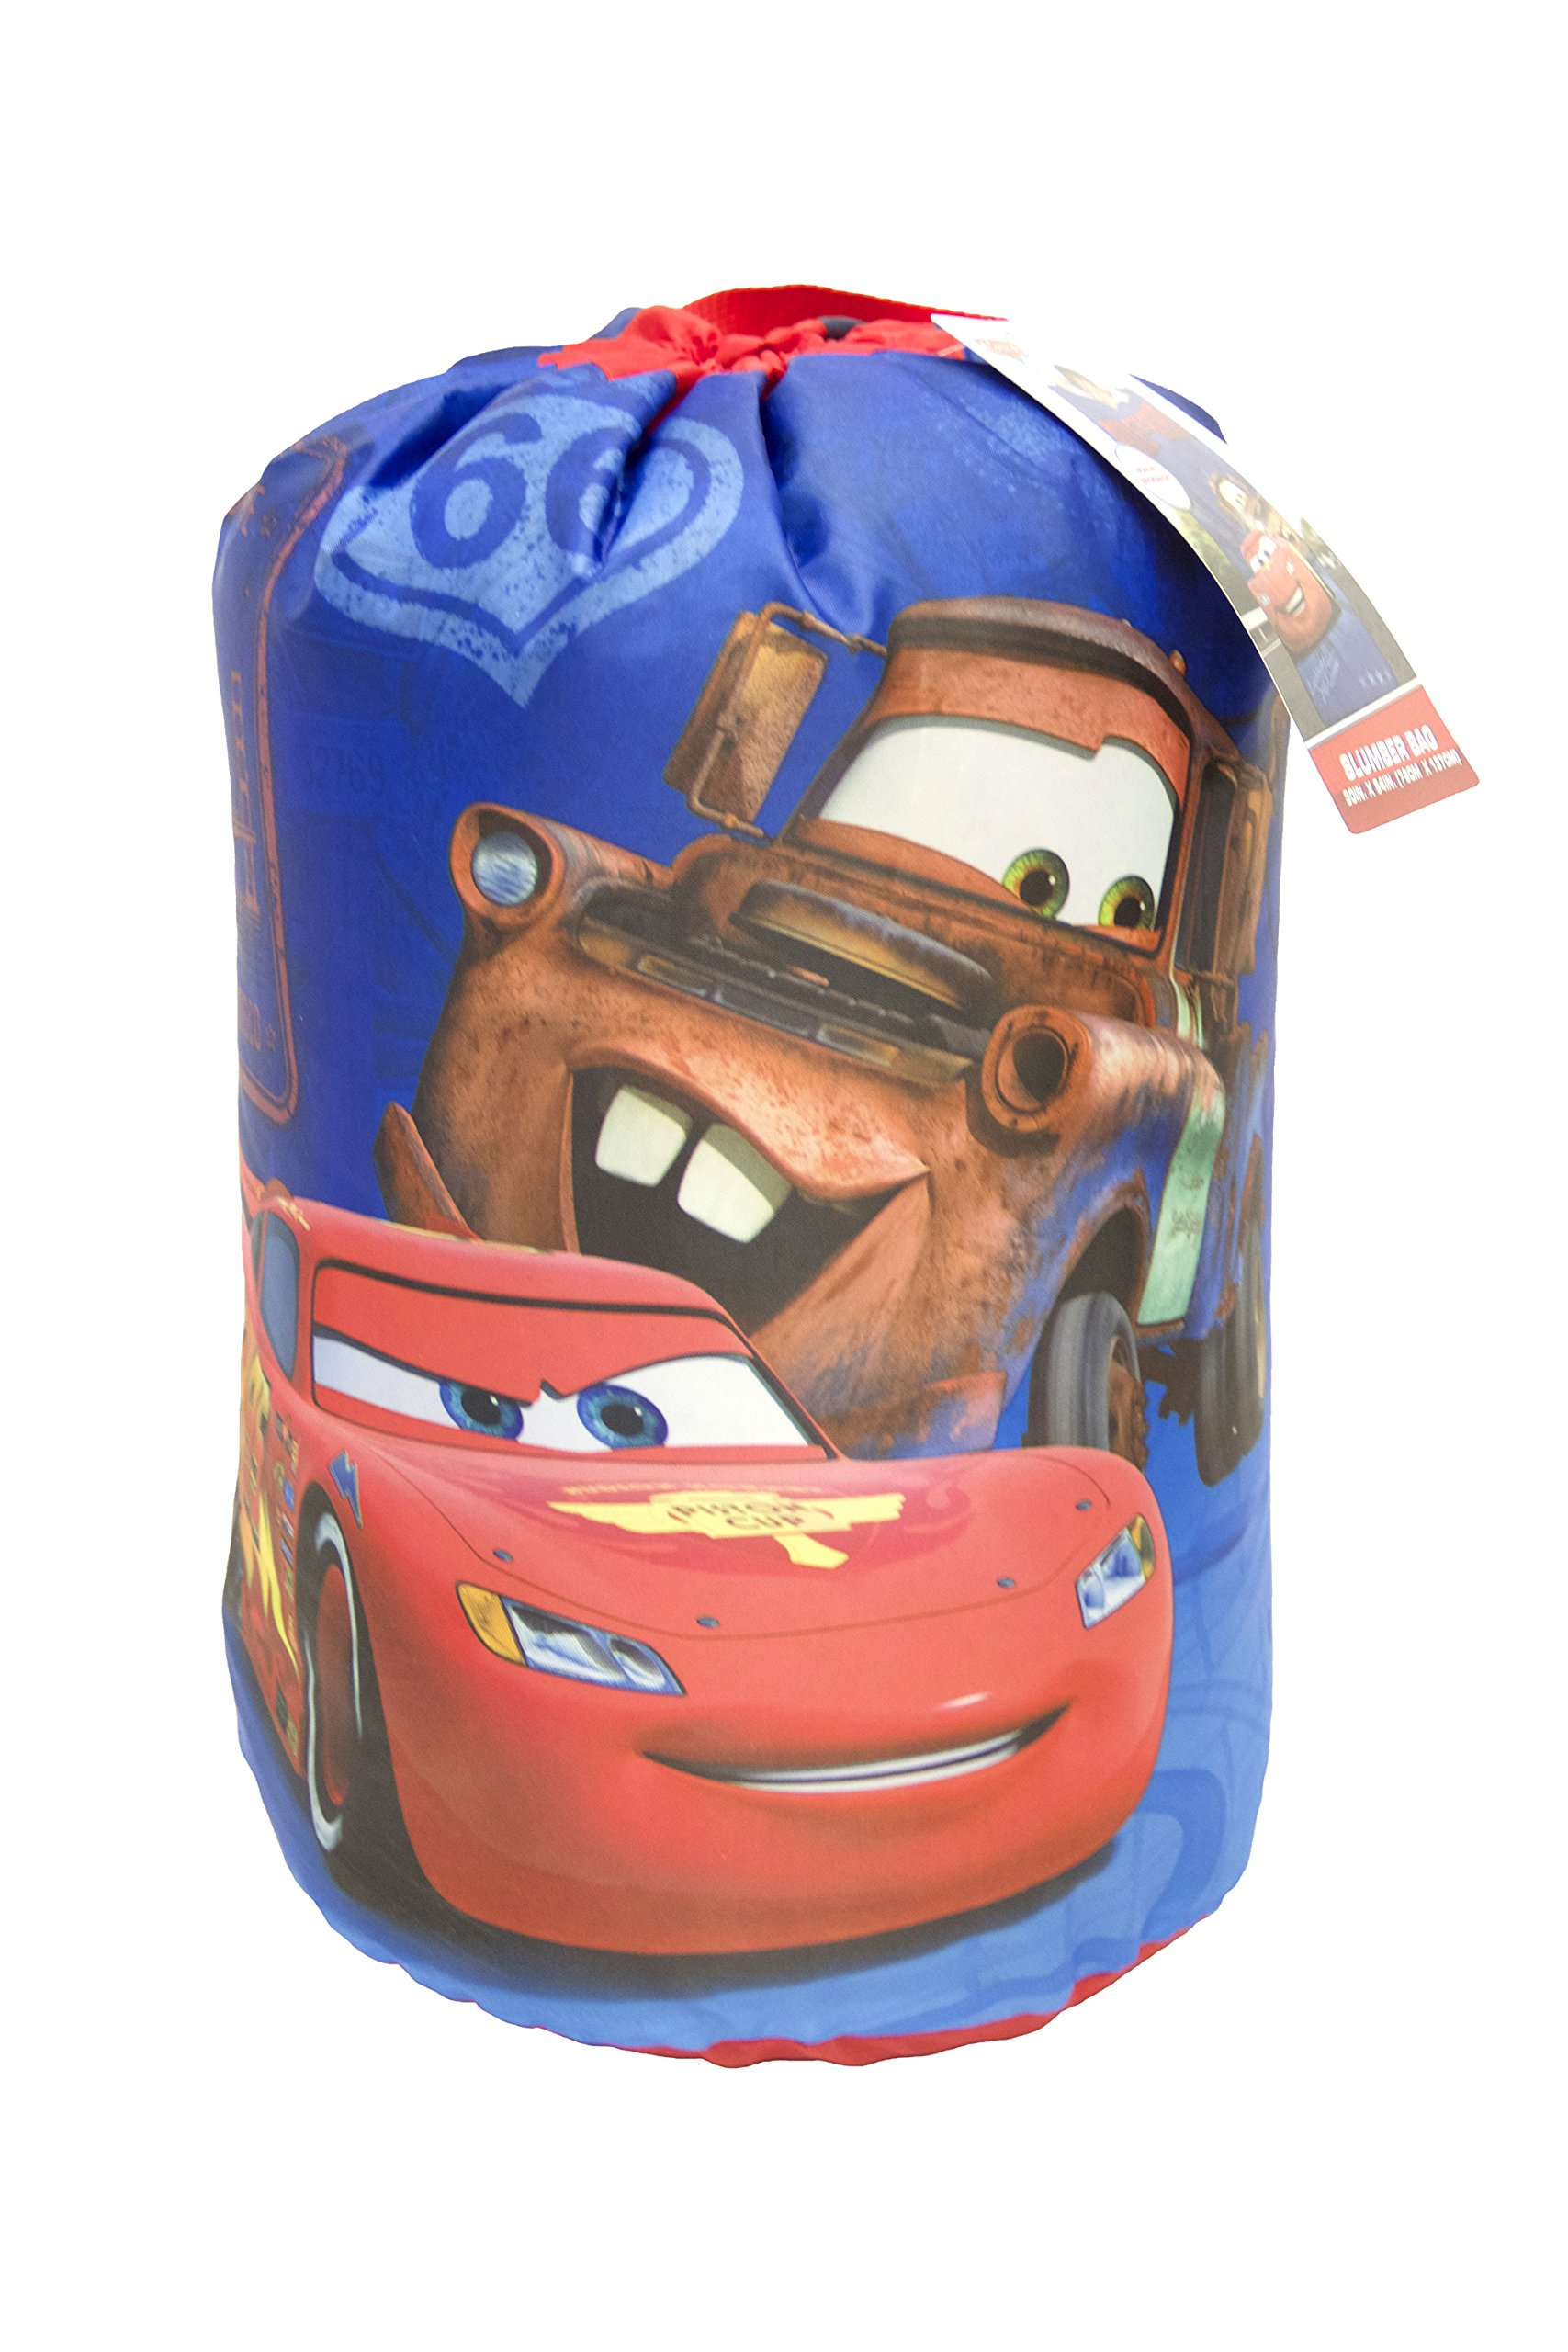 Disney/Pixar Cars Rule The Road McQueen & Mater Blue 30'' x 54'' Slumber Bag, Matching Carry Bag Included (Official Disney/Pixar Product) by Disney (Image #2)